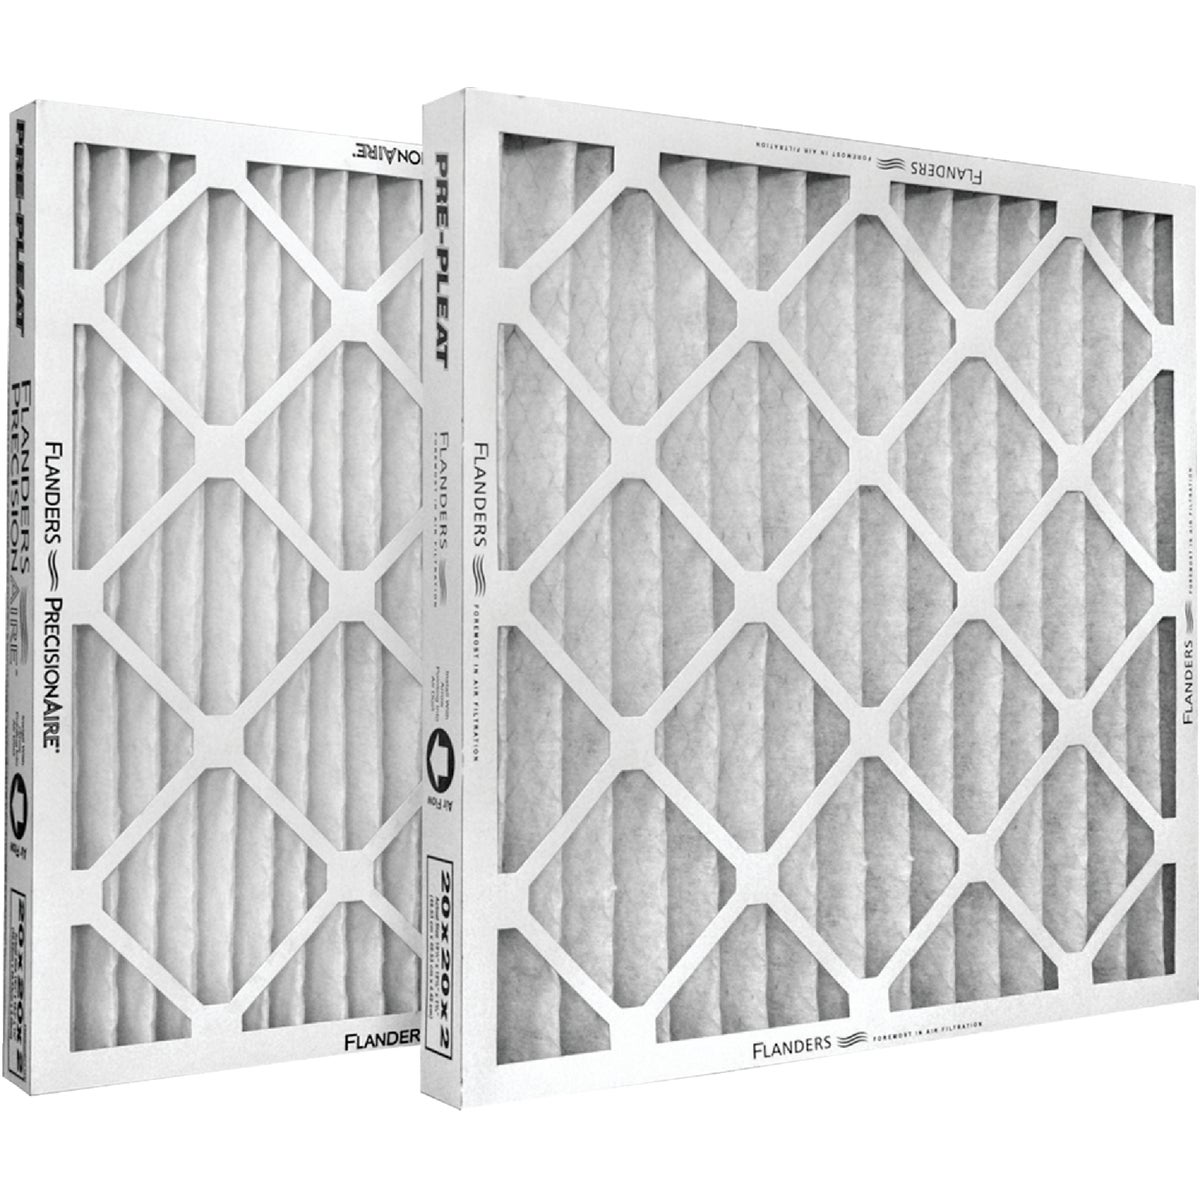 20X20X2 FURNACE FILTER - 80055.022020 by Flanders Corp